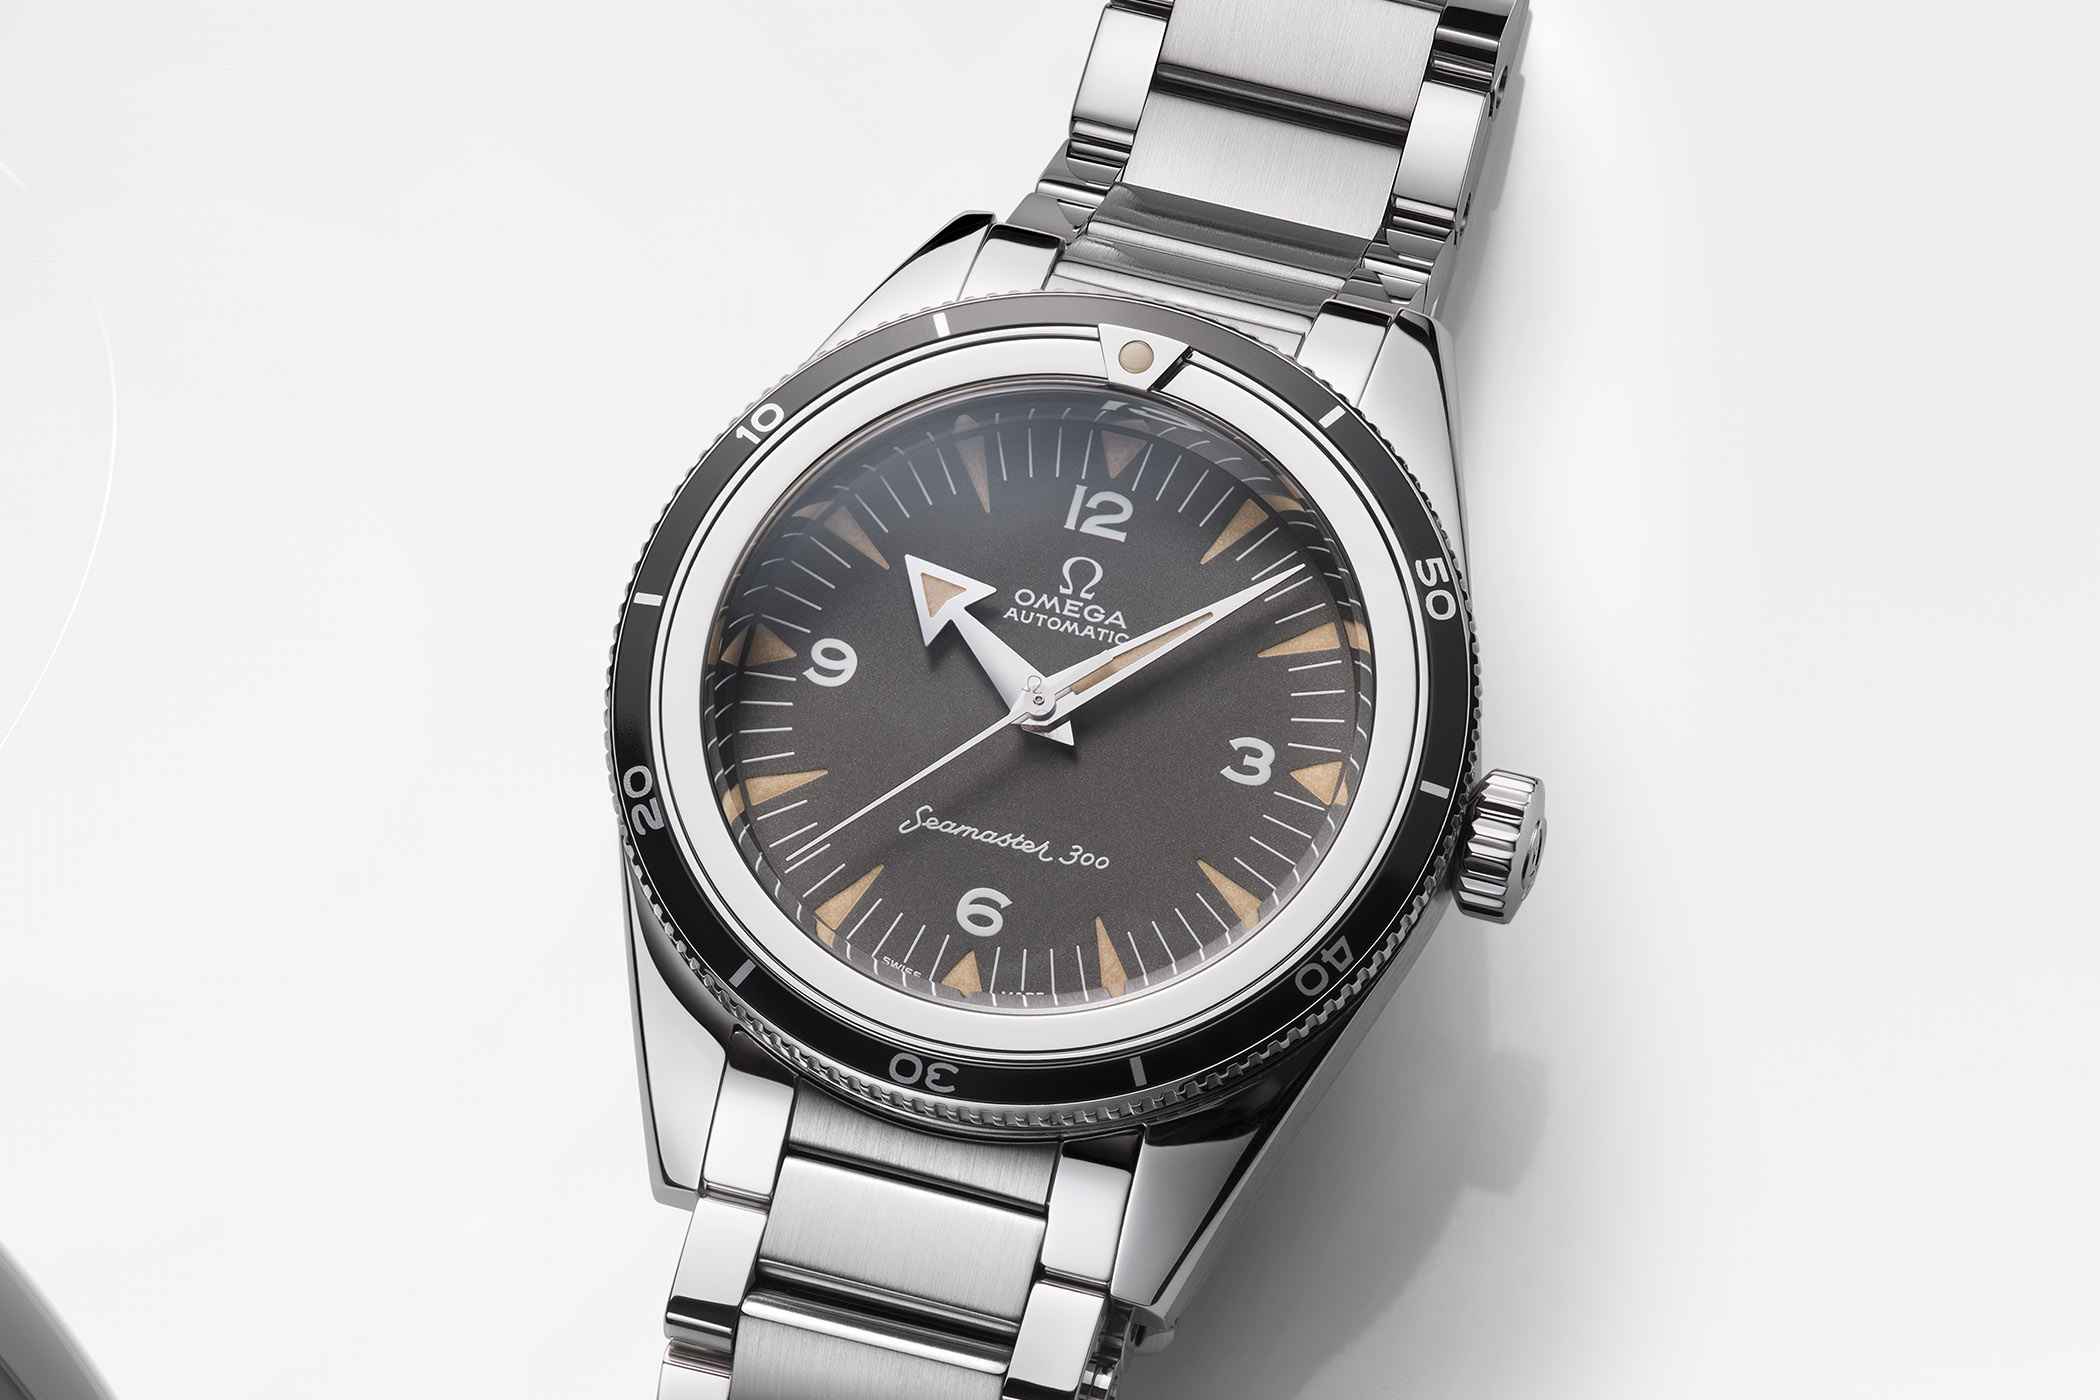 a98adc7a3fe Omega Seamaster 300 60th Anniversary Limited Edition Master Chronometer  39mm - Baselworld 2017